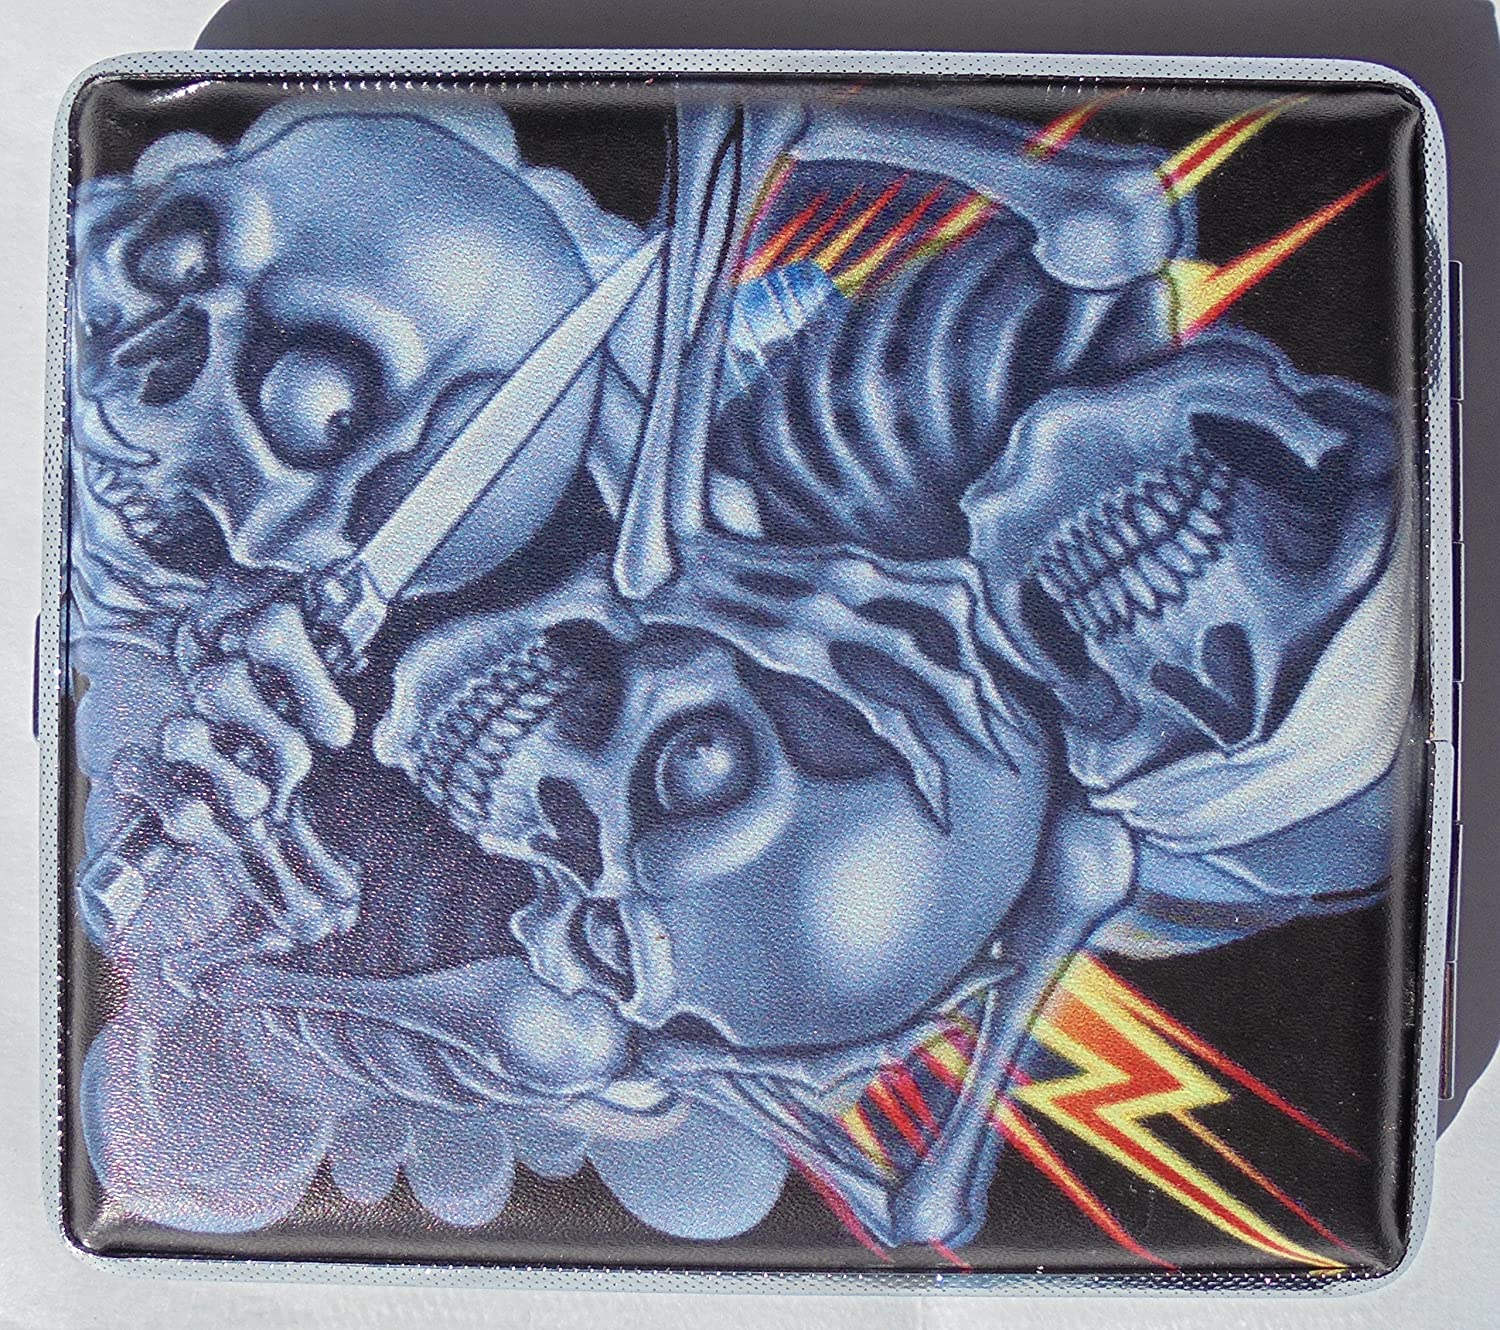 Metal Cigarette Case Challenge the lowest price Couple Skull Design Ranking TOP6 Book - 100 Open Style